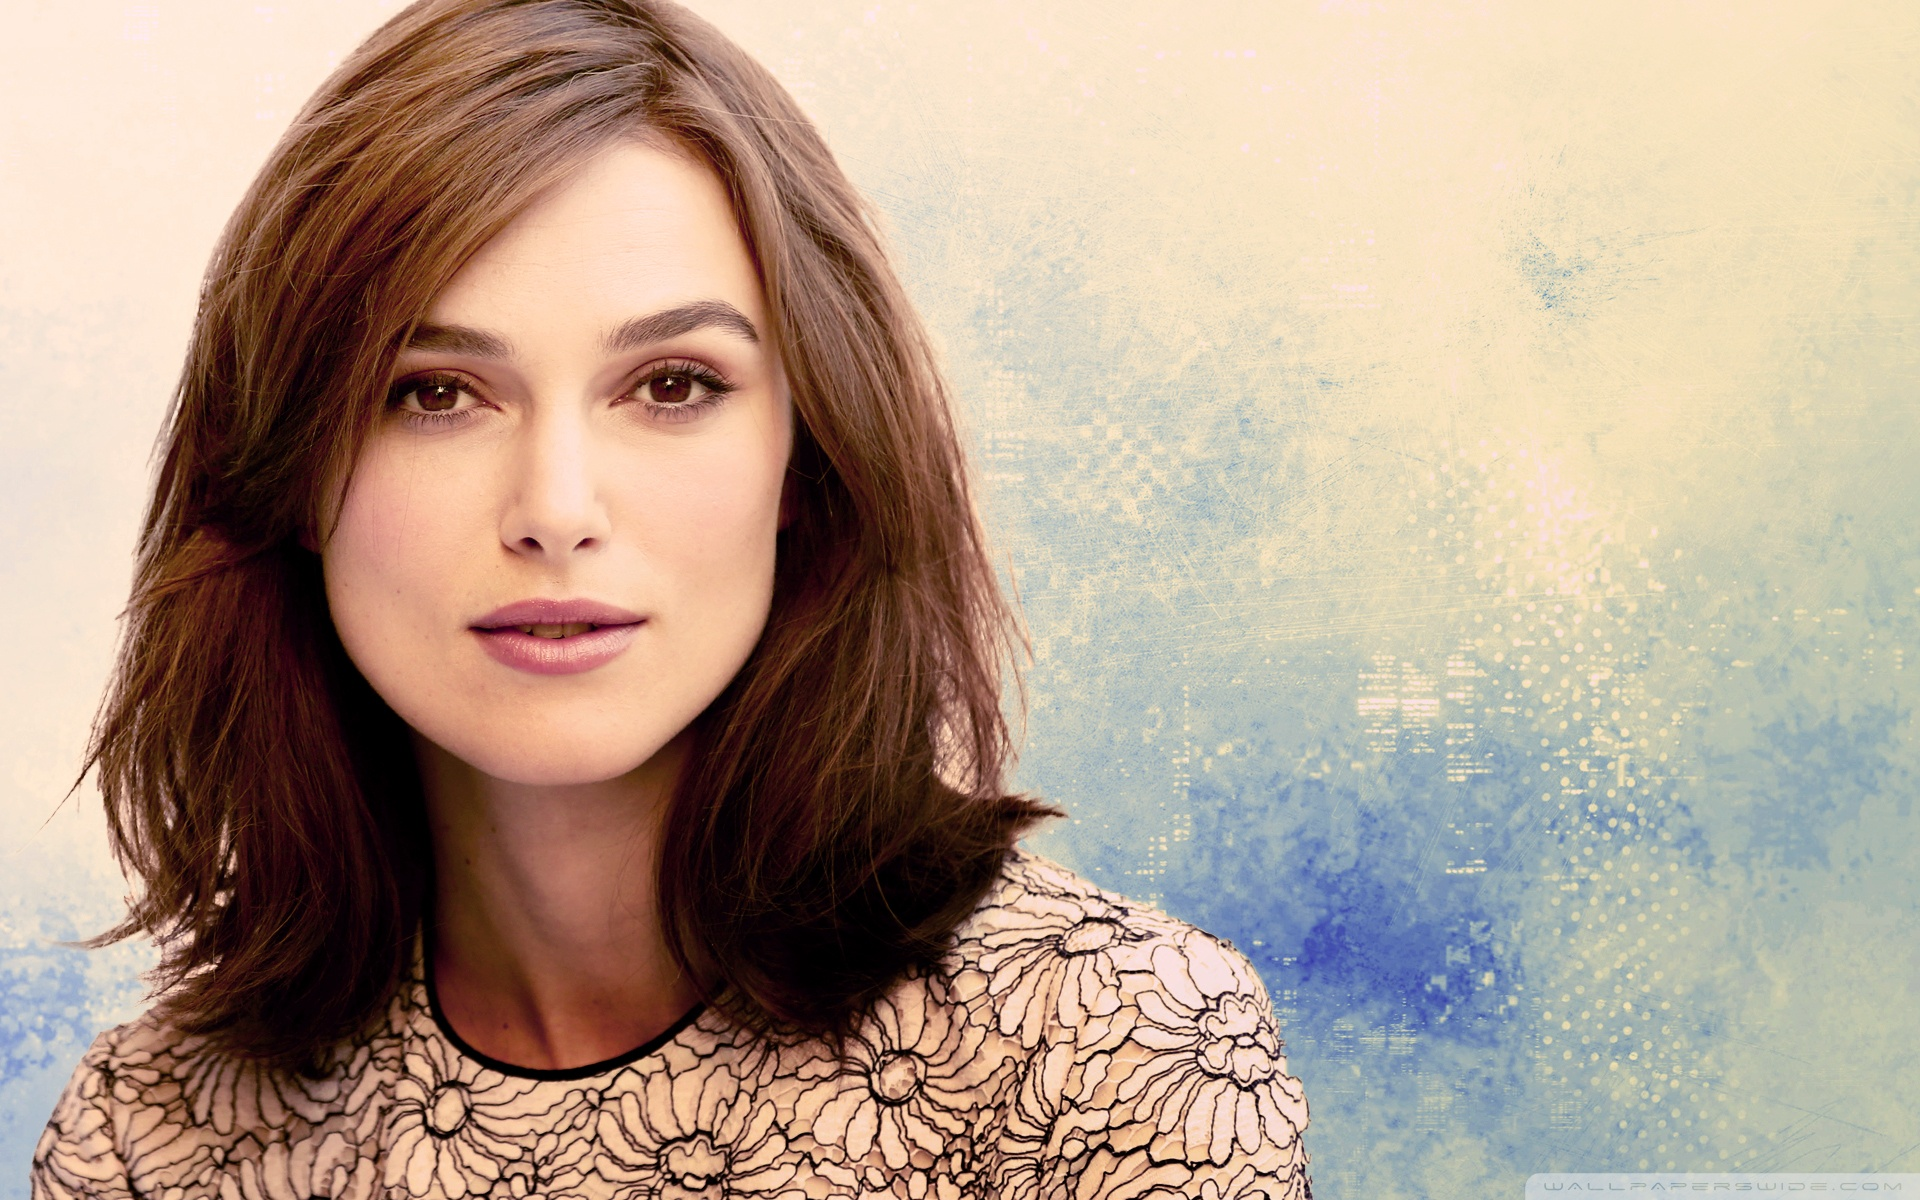 1920x1200 - Keira Knightley Wallpapers 1